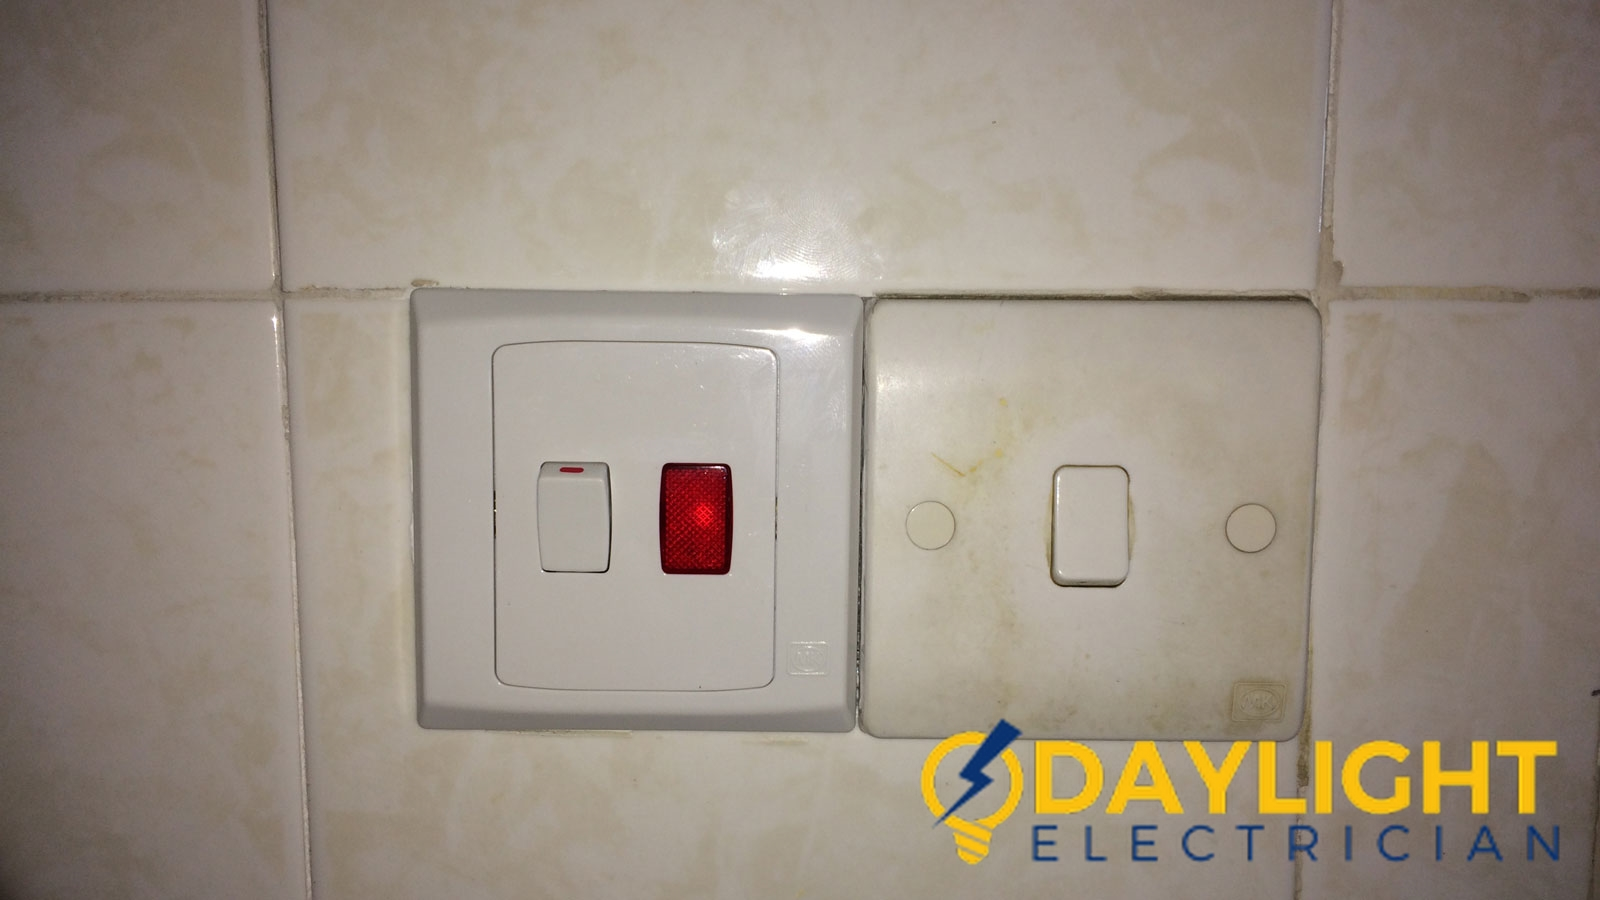 water heater switch installation daylight electrician singapore landed sembawang wm